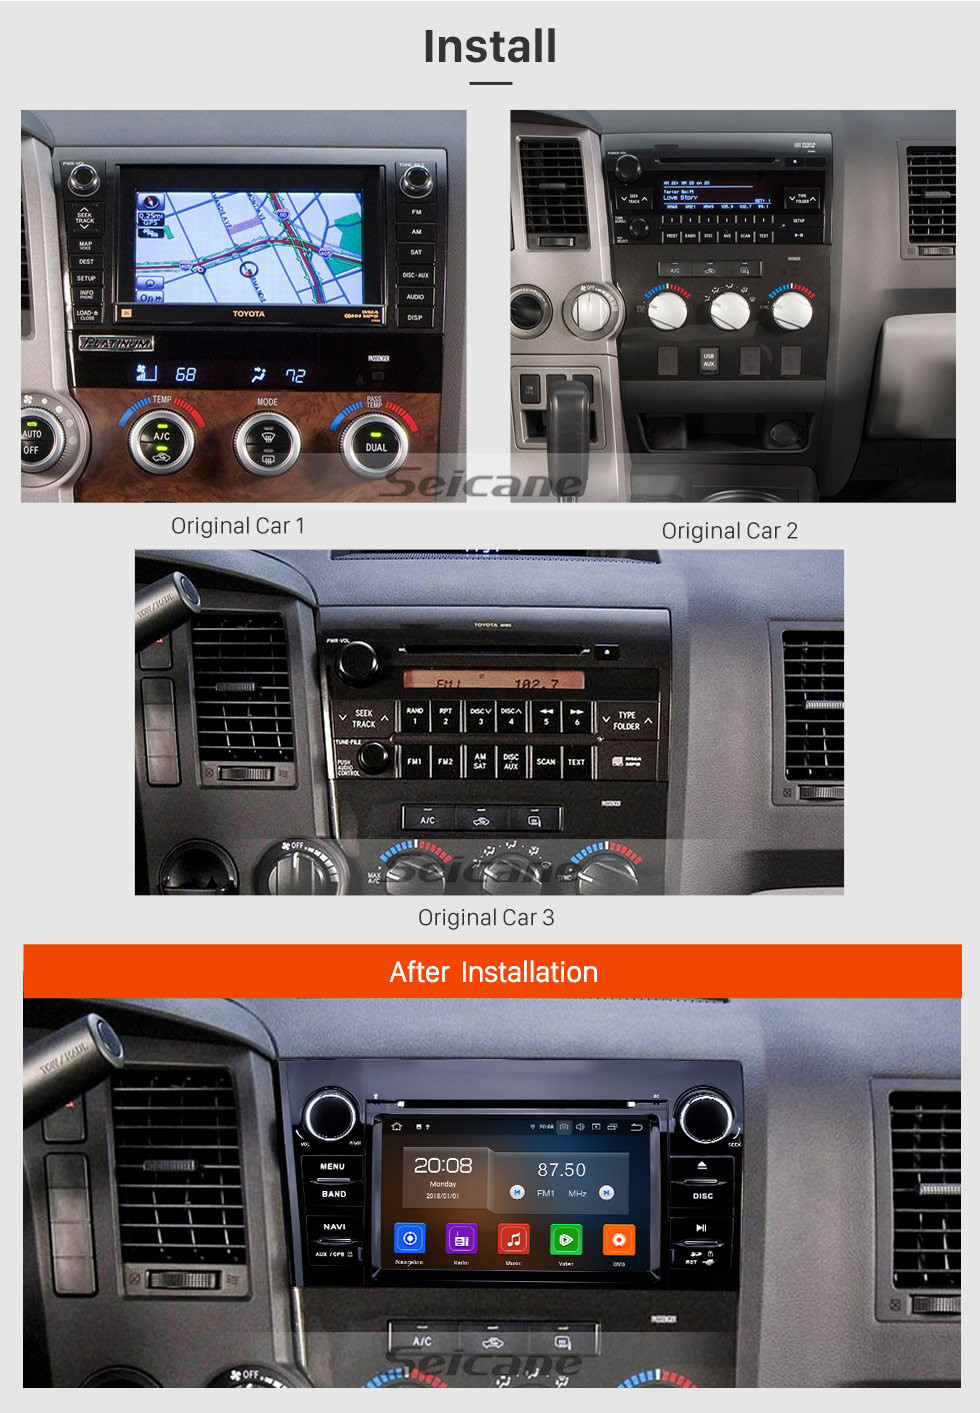 Seicane Radio de navigation GPS à écran tactile Android 9.0 HD de 7 pouces pour Toyota Sequoia / Toundra 2006-2013 2008-2015 avec prise en charge Carplay Bluetooth WIFI USB Caméra de recul